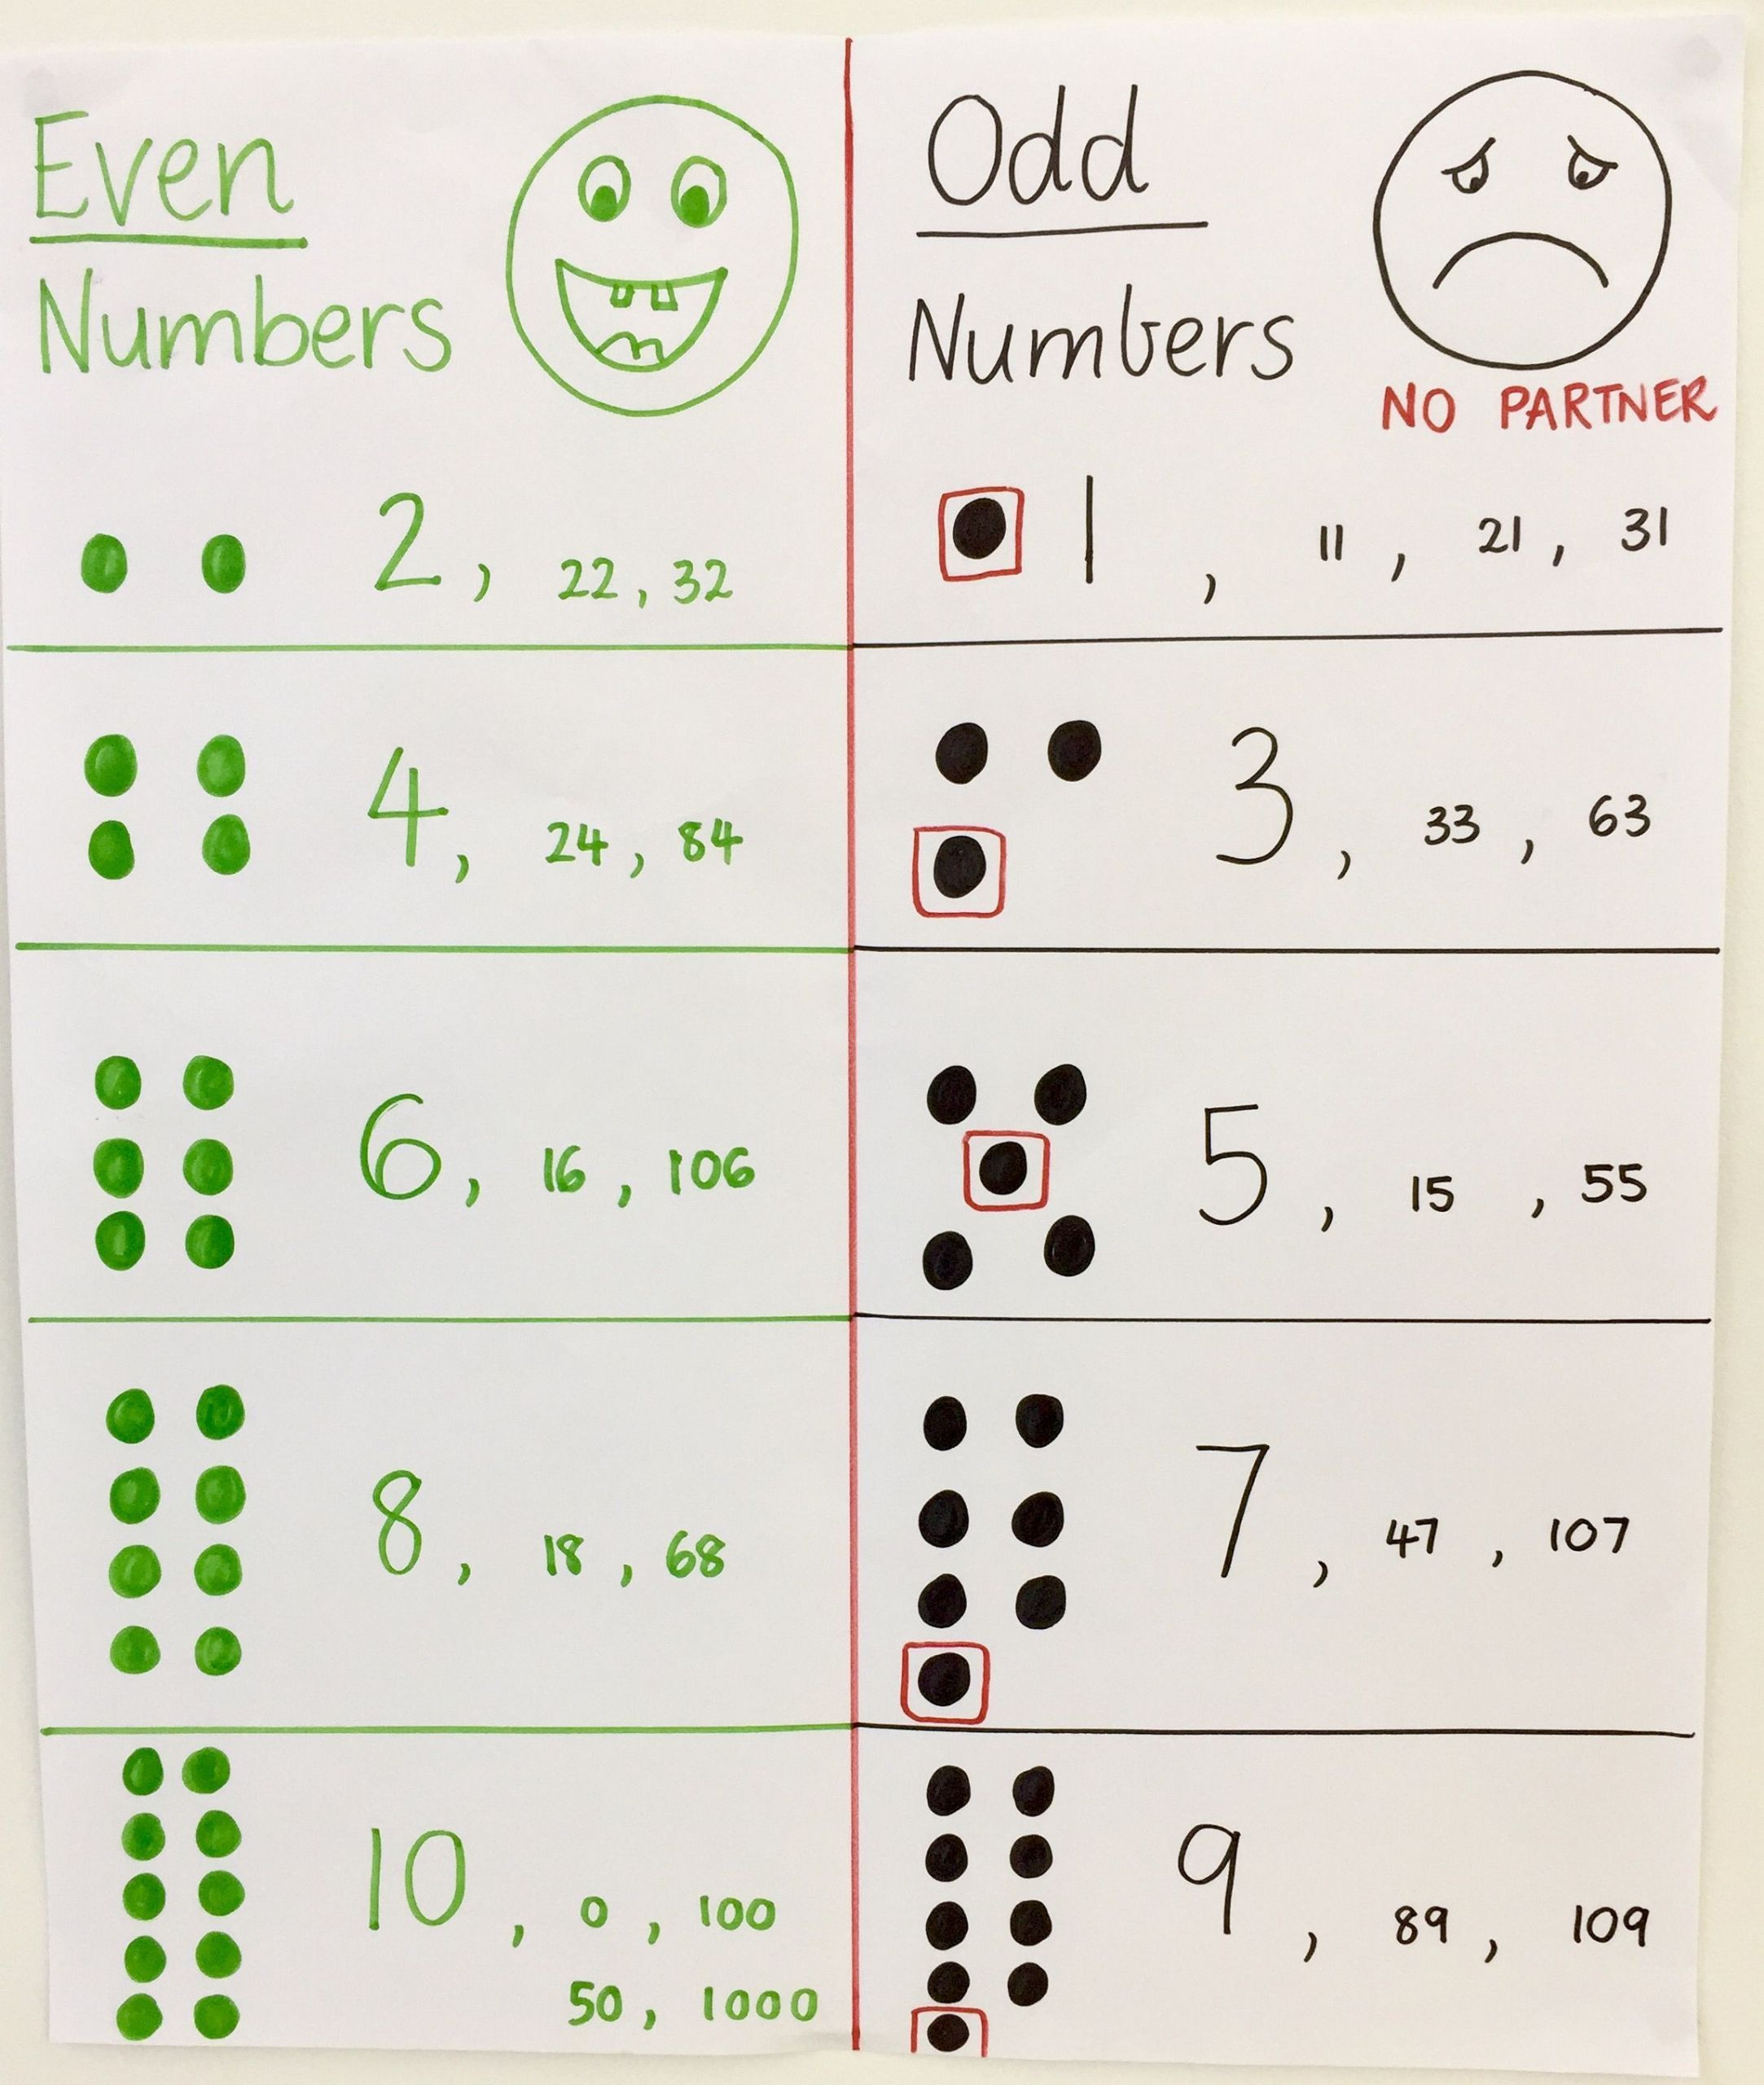 medium resolution of 6 even and Odd Numbers Worksheet Printable in 2020   Number worksheets